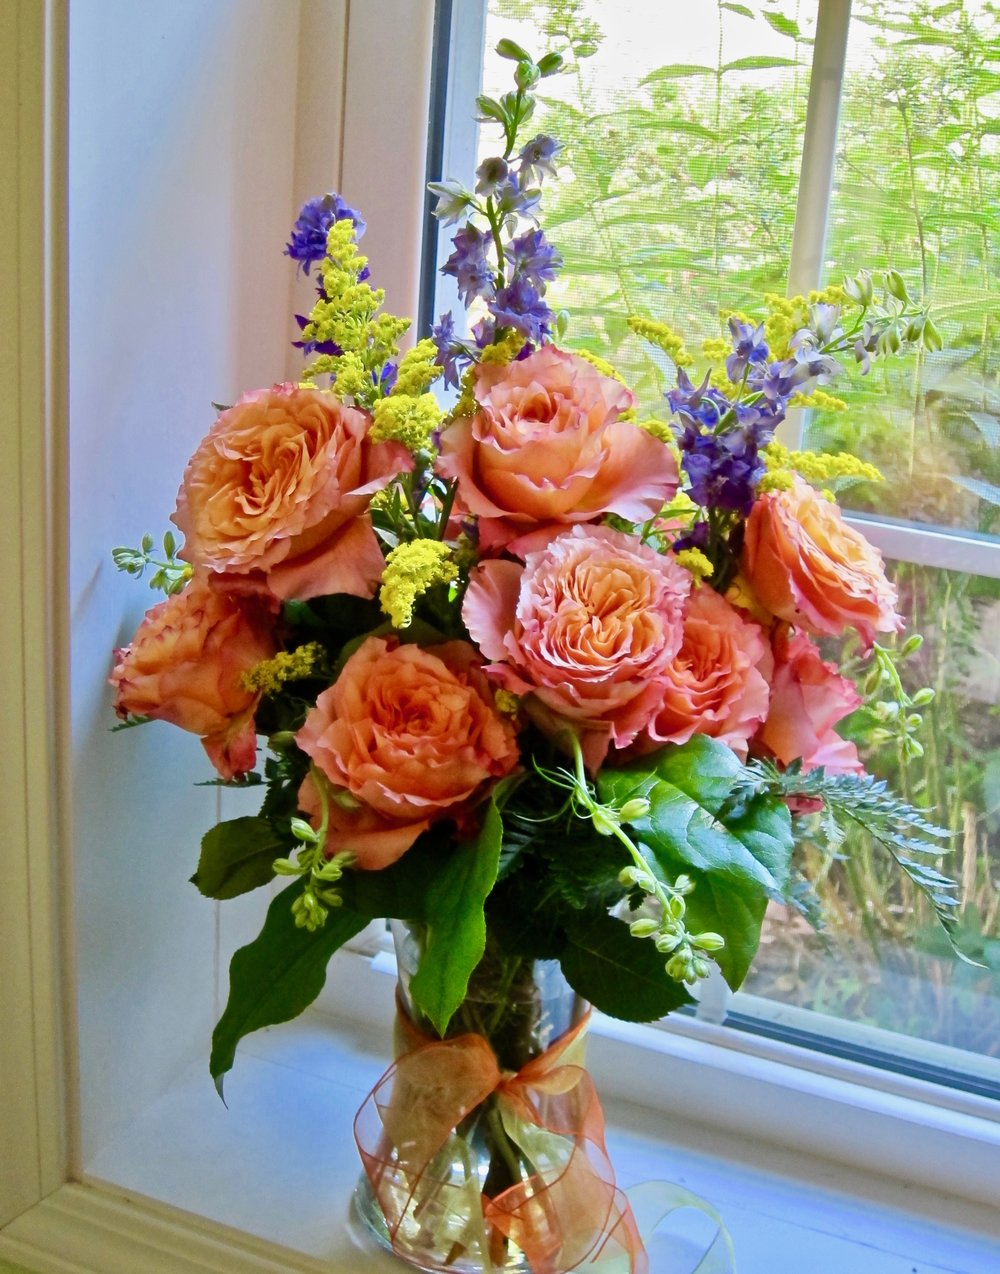 CLASSIC DOZEN ROSES   Twelve roses accented with foliage and fillers, $75. Shown here, our signature Free Spirit Rose with purple larkspur and yellow solidago..